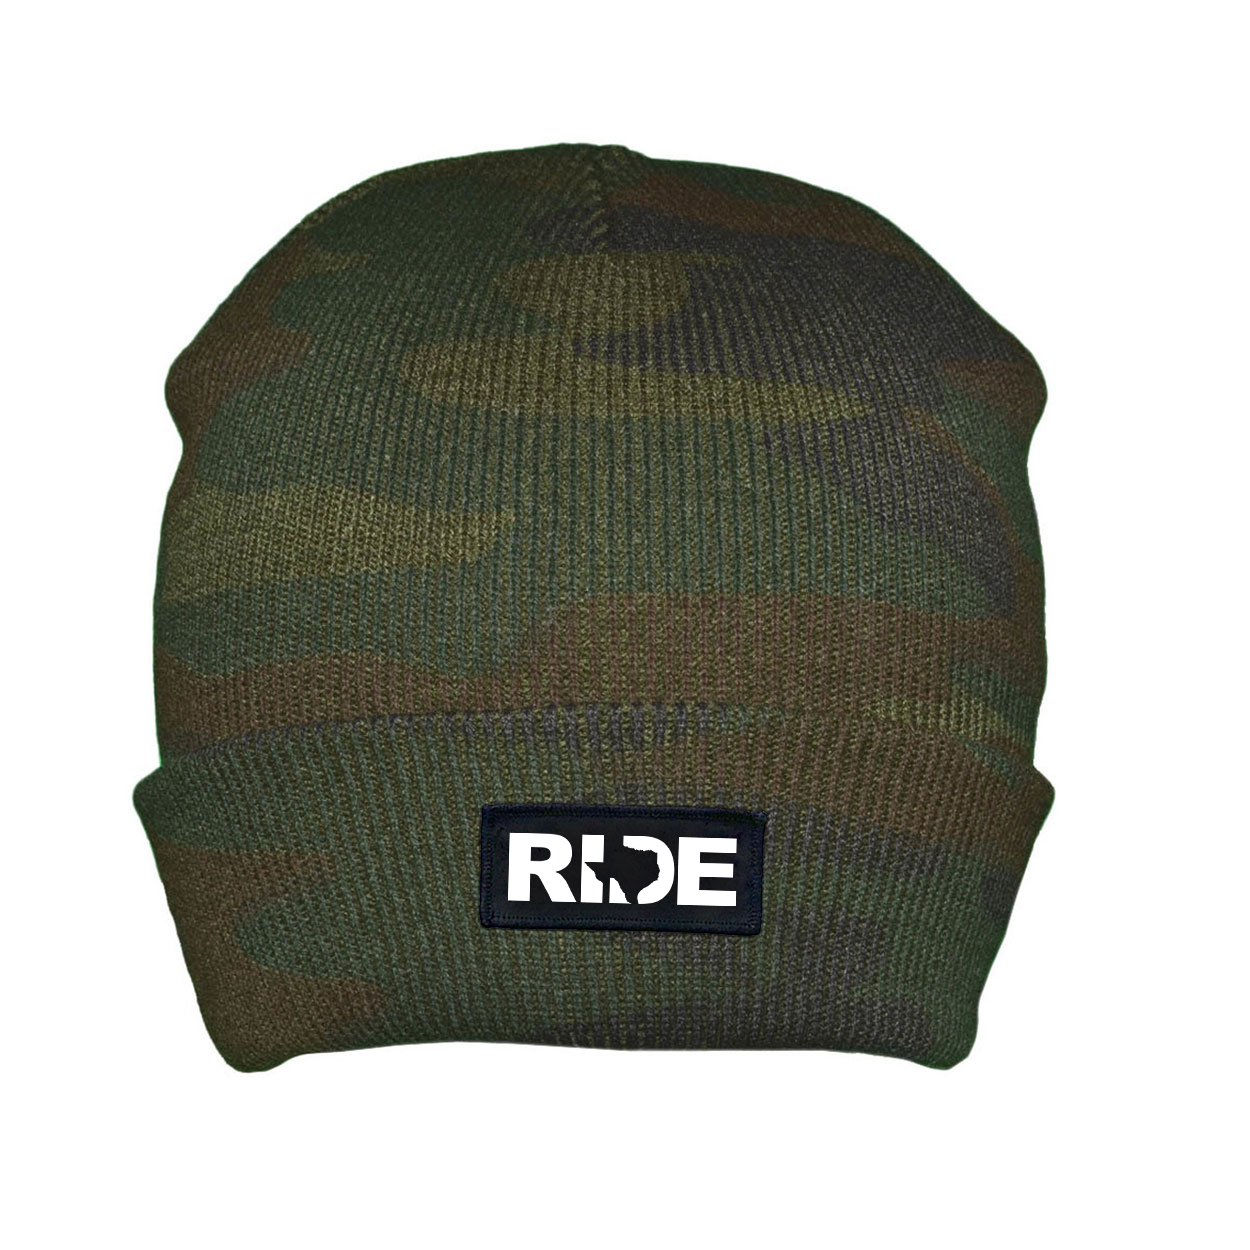 Ride Texas Night Out Woven Patch Roll Up Skully Beanie Camo (White Logo)